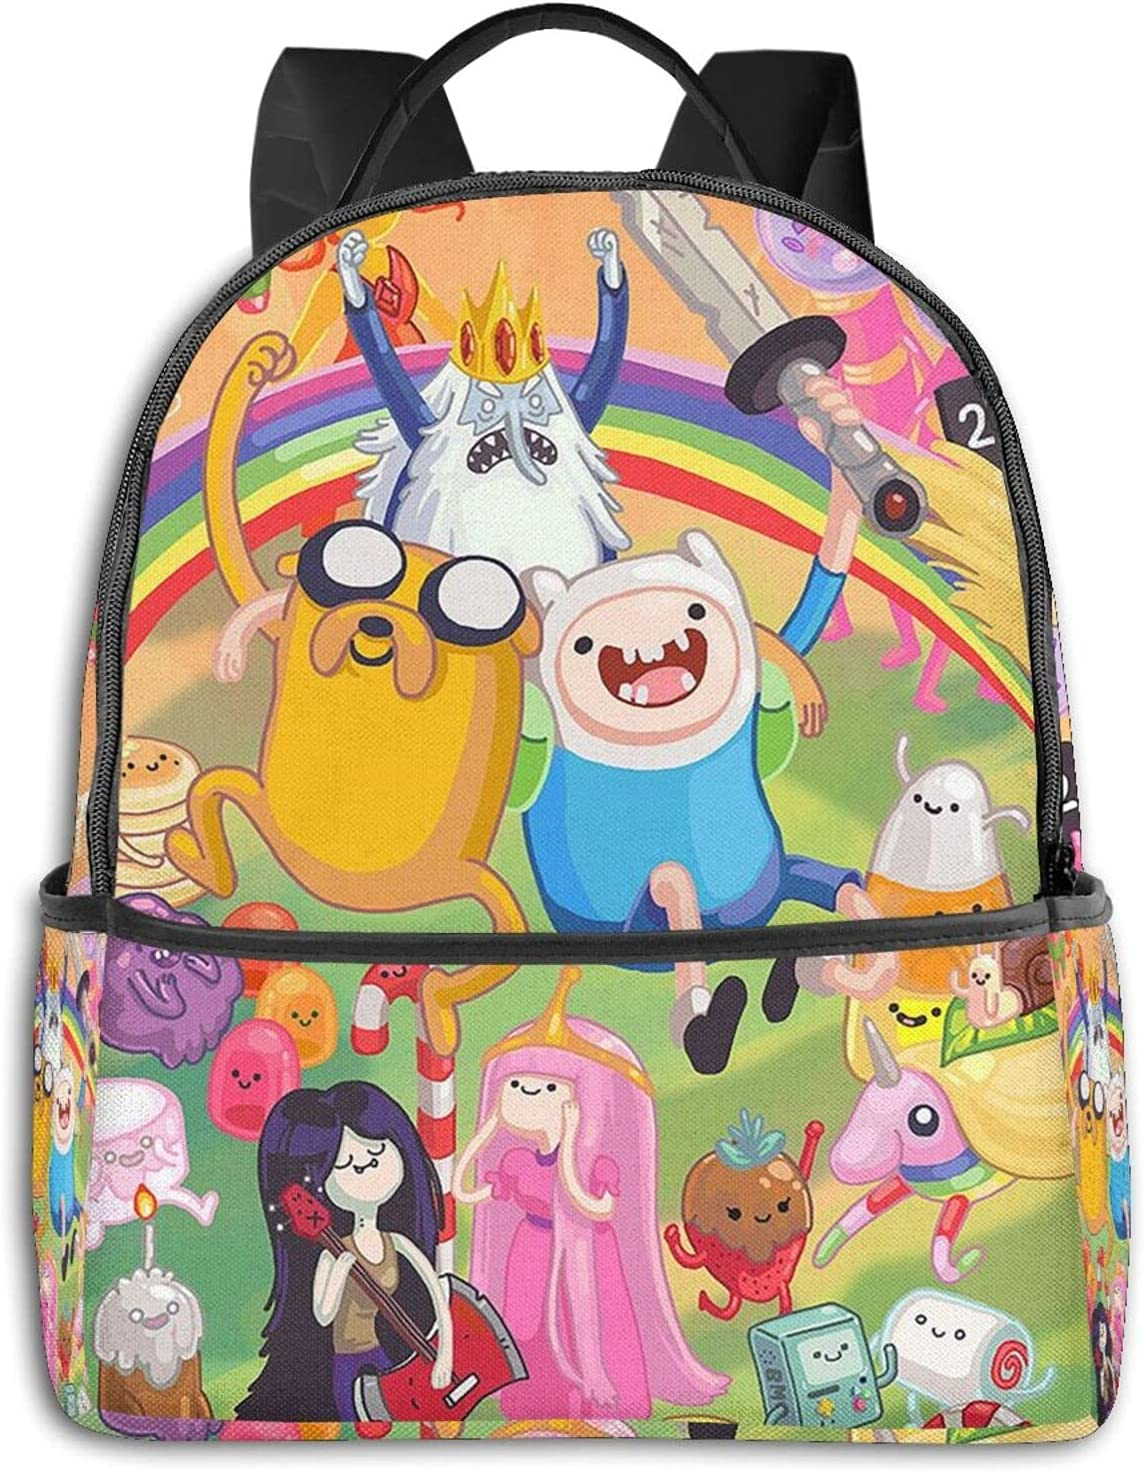 Adventure Time Financial sales sale 3d Print Backpack For Laptop Dayp Travel Selling rankings Bag Book